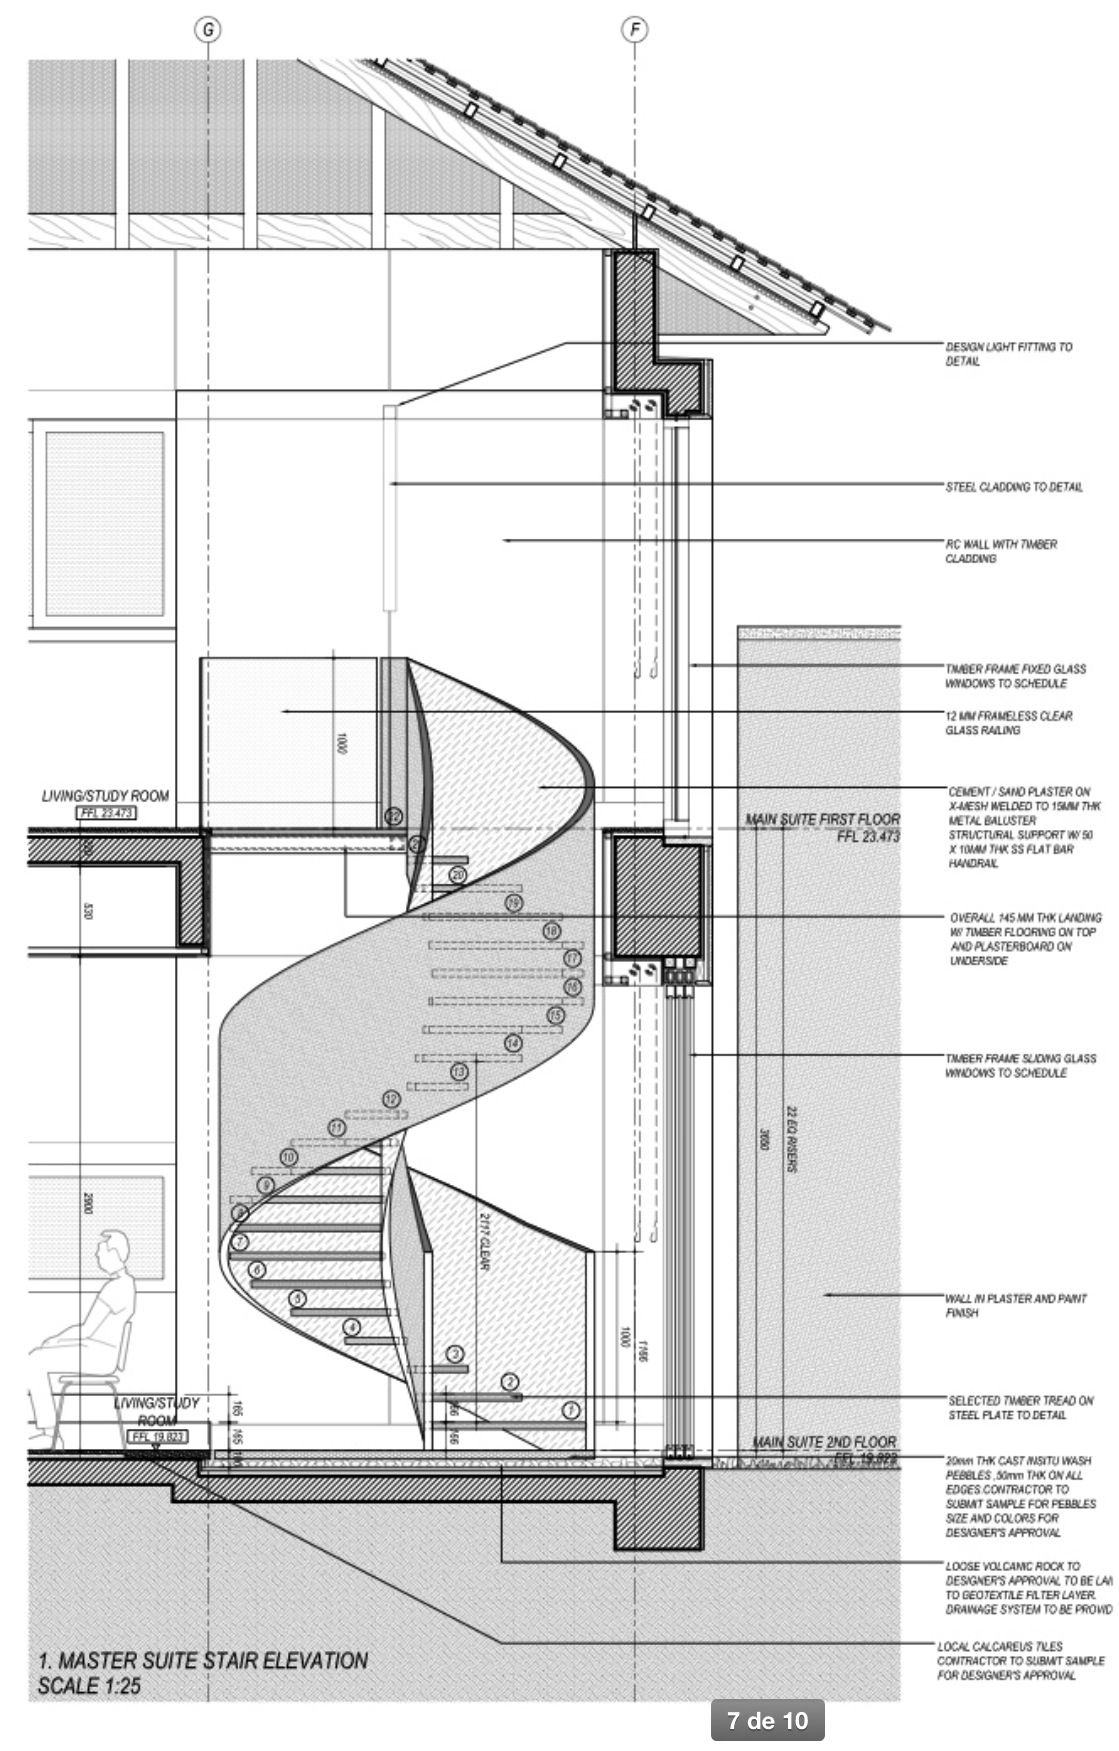 Stairs spiral stair bedmar shi drawn by me Spiral stair details